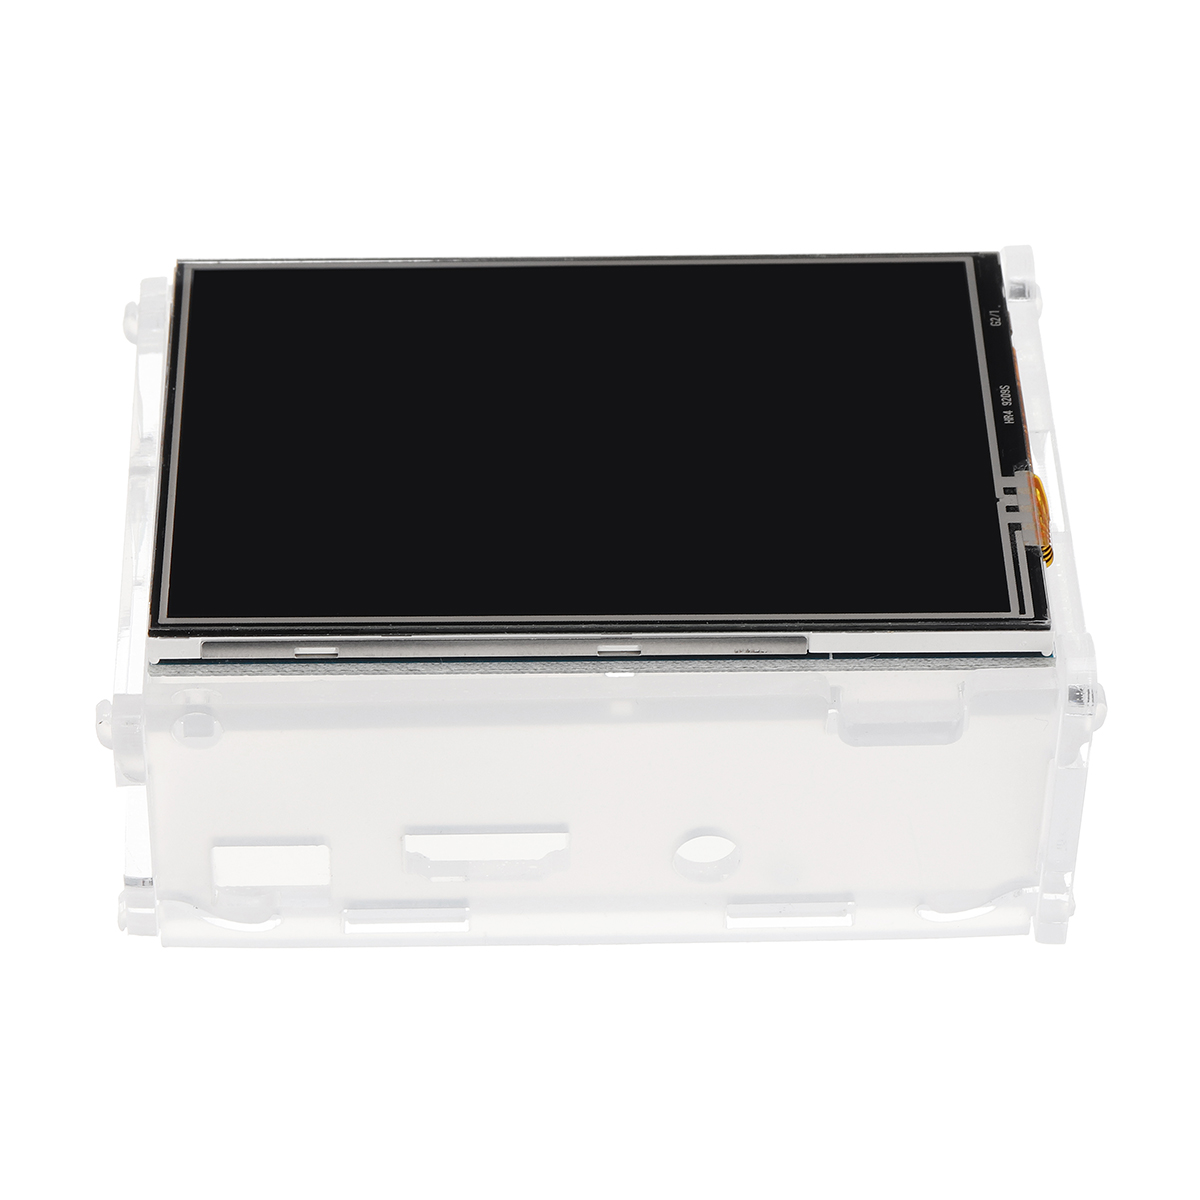 Geekcreit® 3.5 inch TFT LCD Touch Screen + Protective Case + Heatsink+ Touch Pen Kit For Raspberry Pi 3/2/3 Model B/3 Model B+